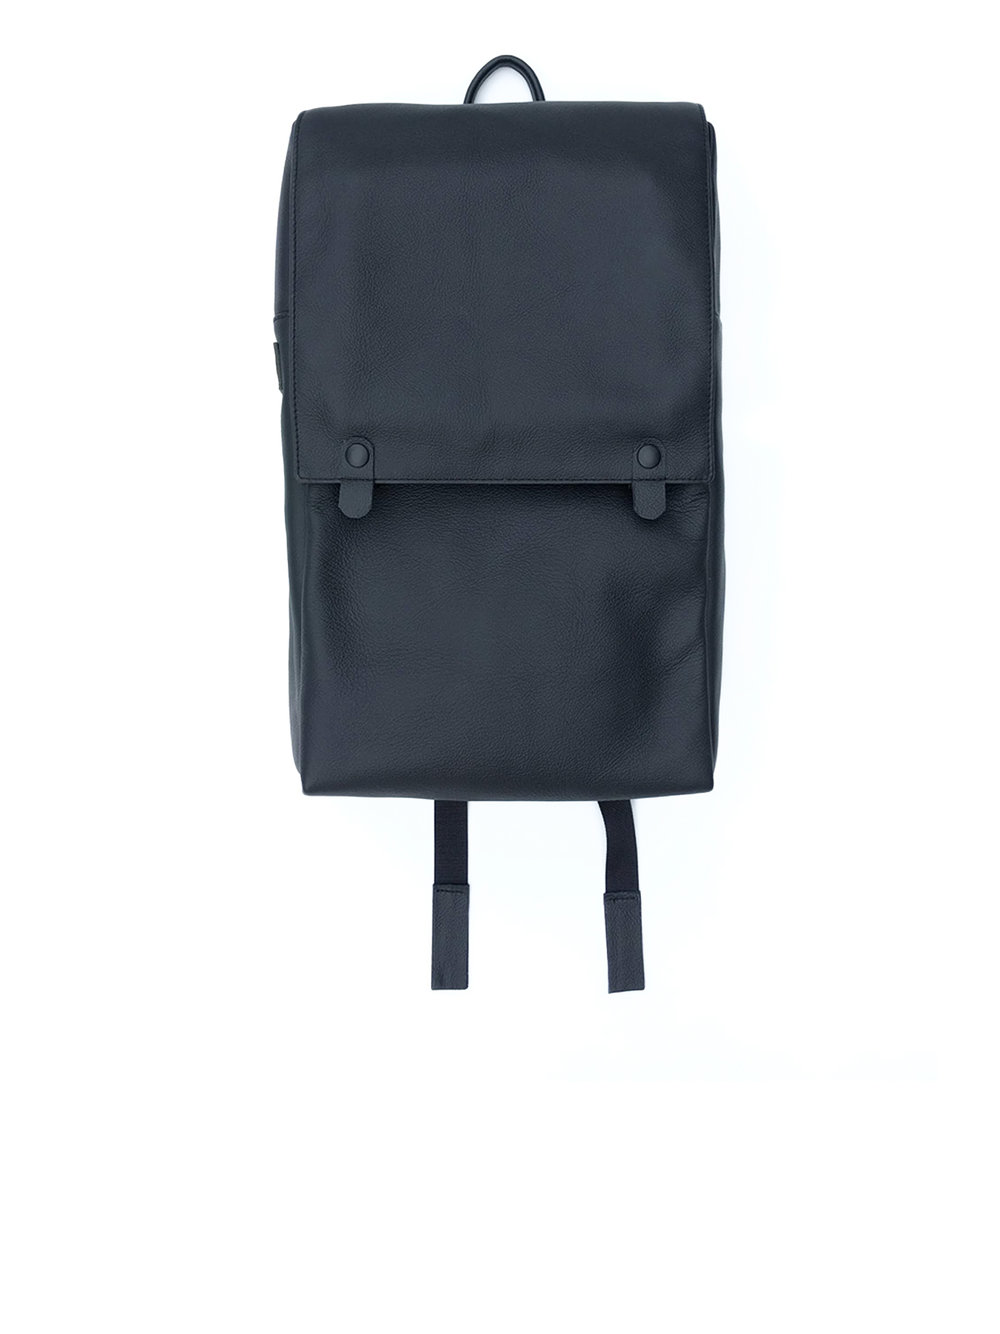 Minimalist backpack - 280.00$